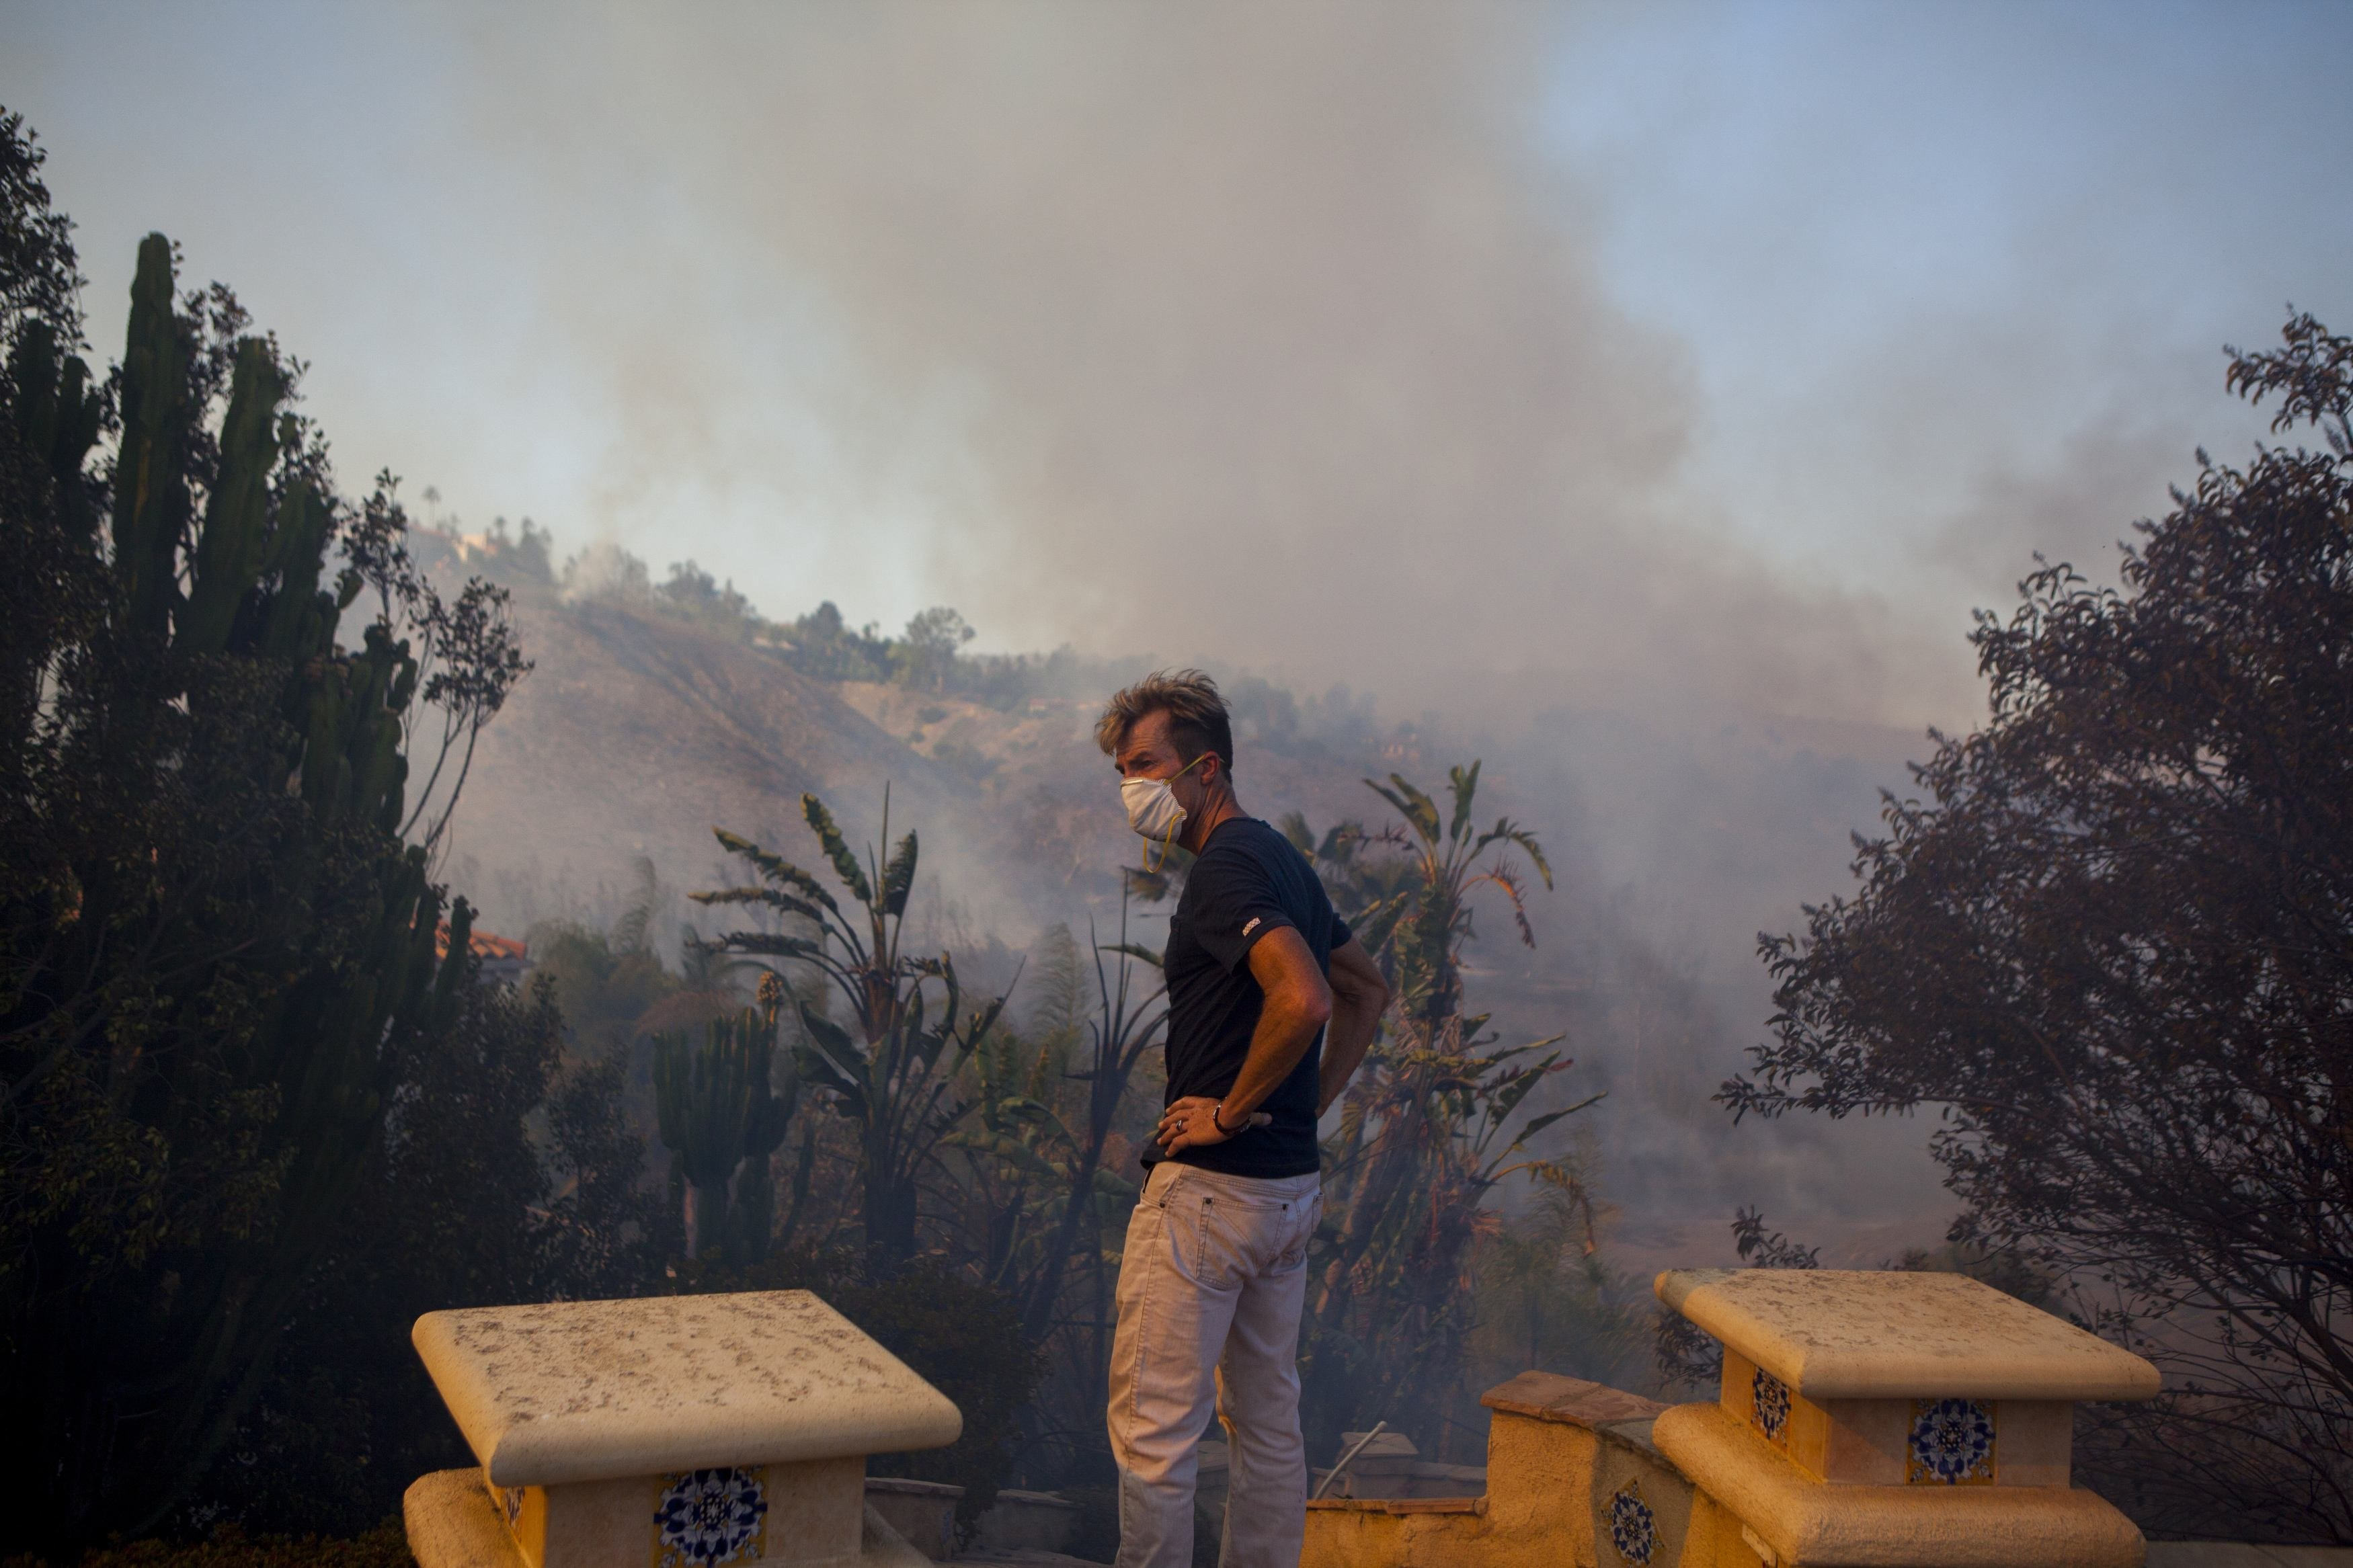 Jonathon Collopy, a resident of Fairbanks Ranch neighborhood, watches the fire burn near his house outside San Diego on May 13, 2014.